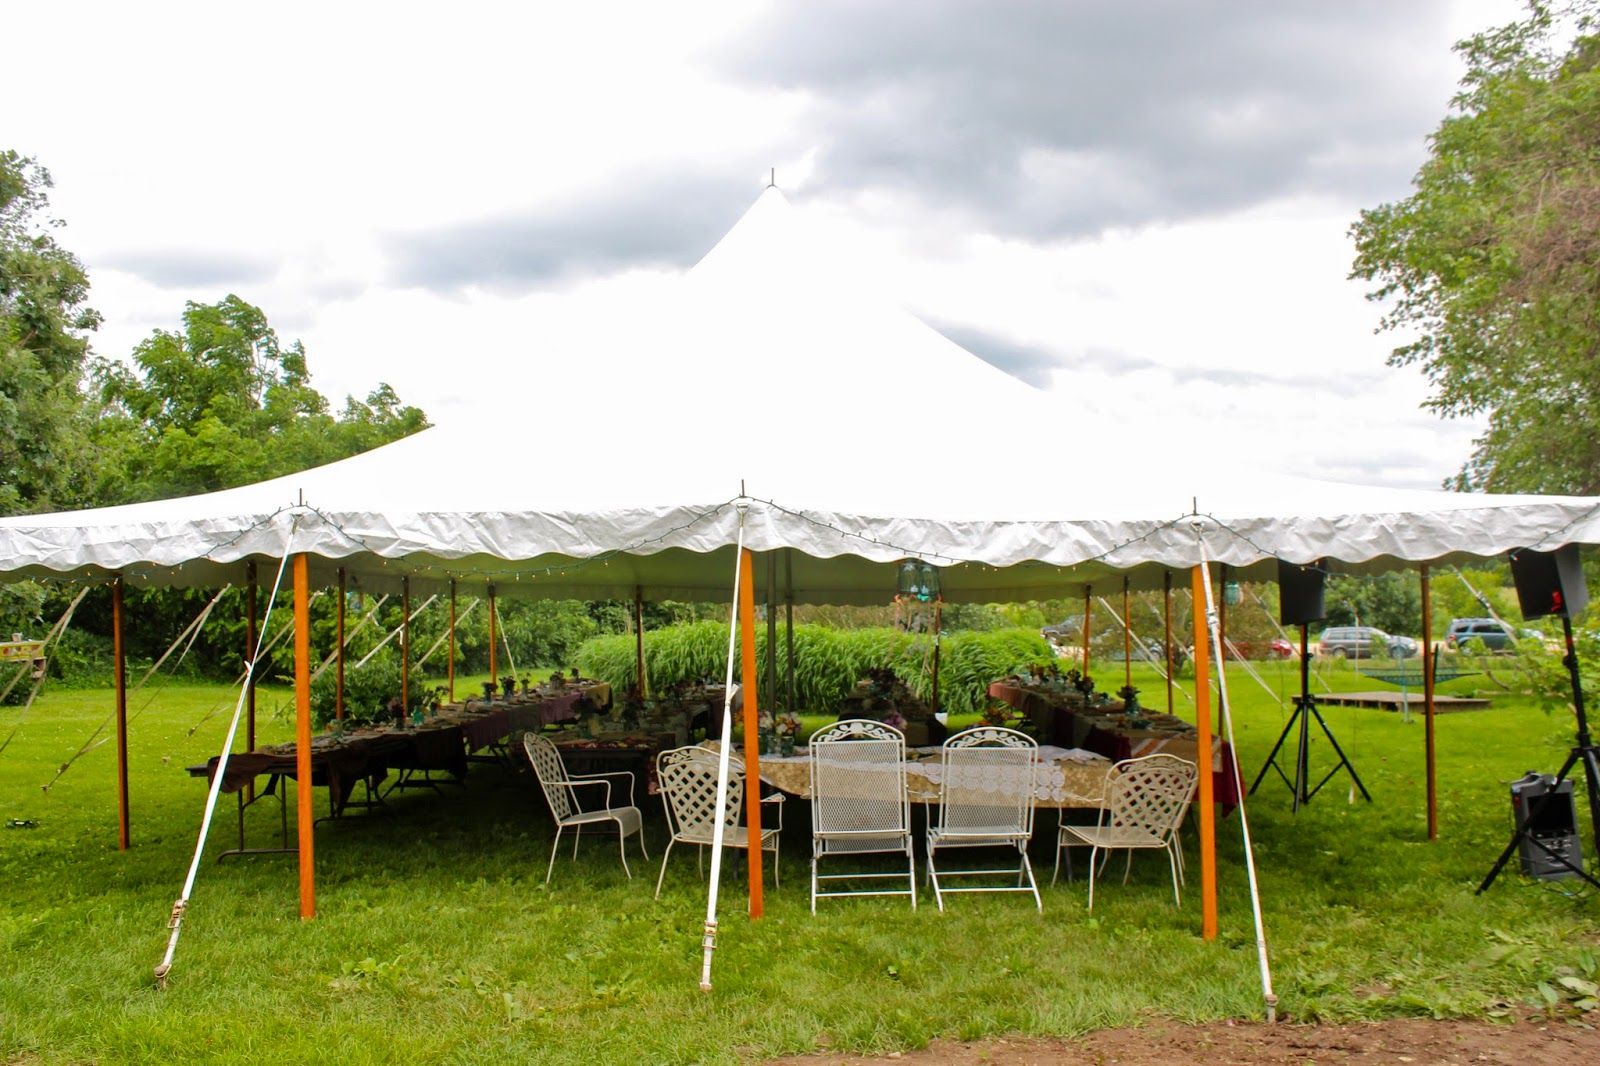 The tent for the dinner was set up on Friday. The forecast for Saturday was for very stormy weather so they decided to rent a second large tent to cover ... & Squash Blossom Farm: A Wedding on the Farm!